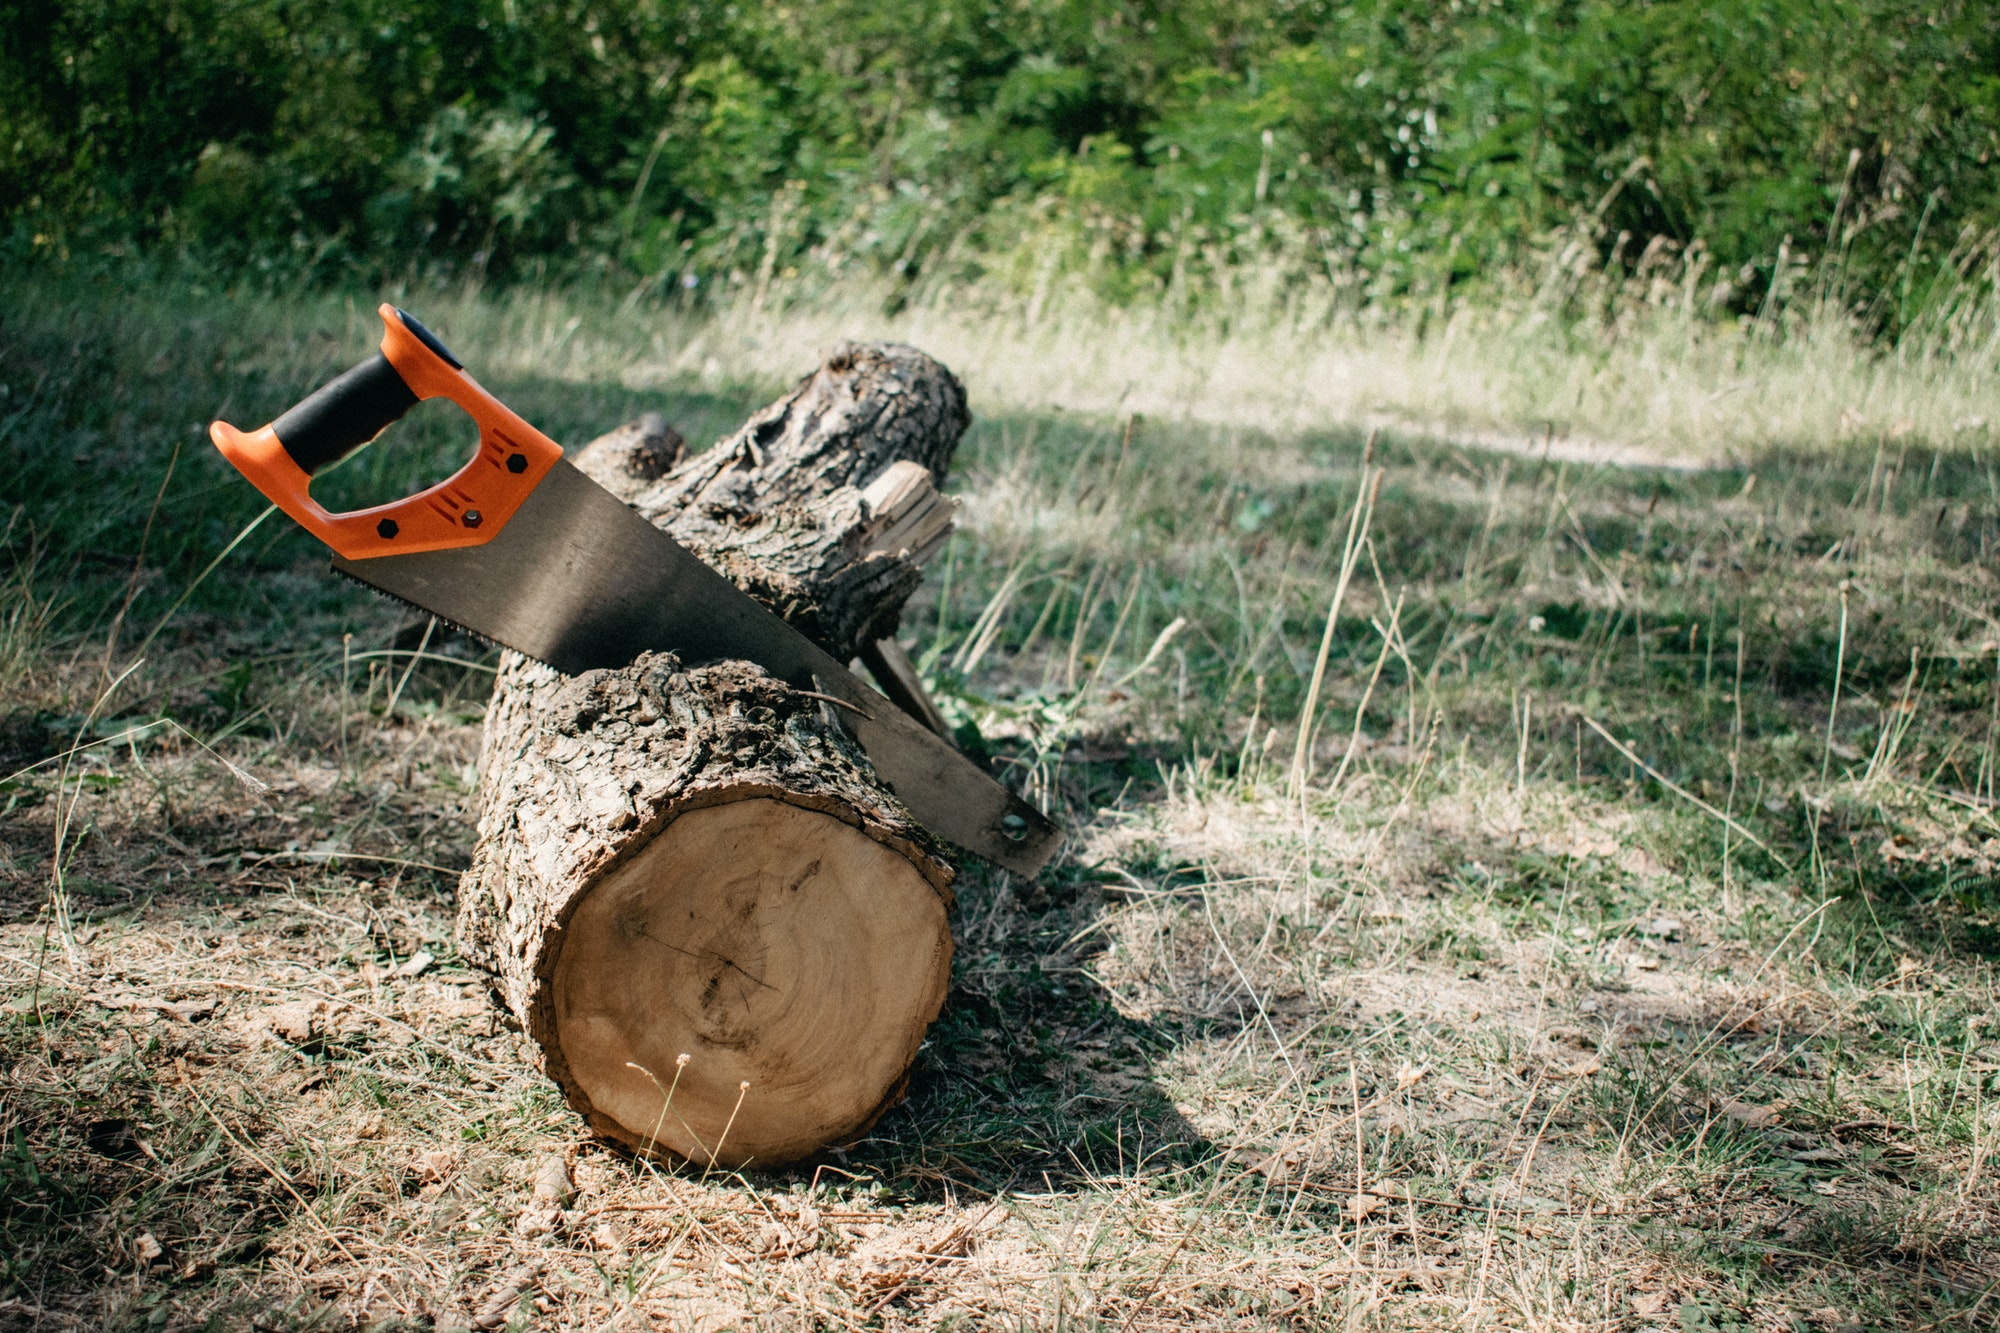 Saw in a log outdoor. Sawing wood for campfire in the forest. Cutting log of wood timber to making